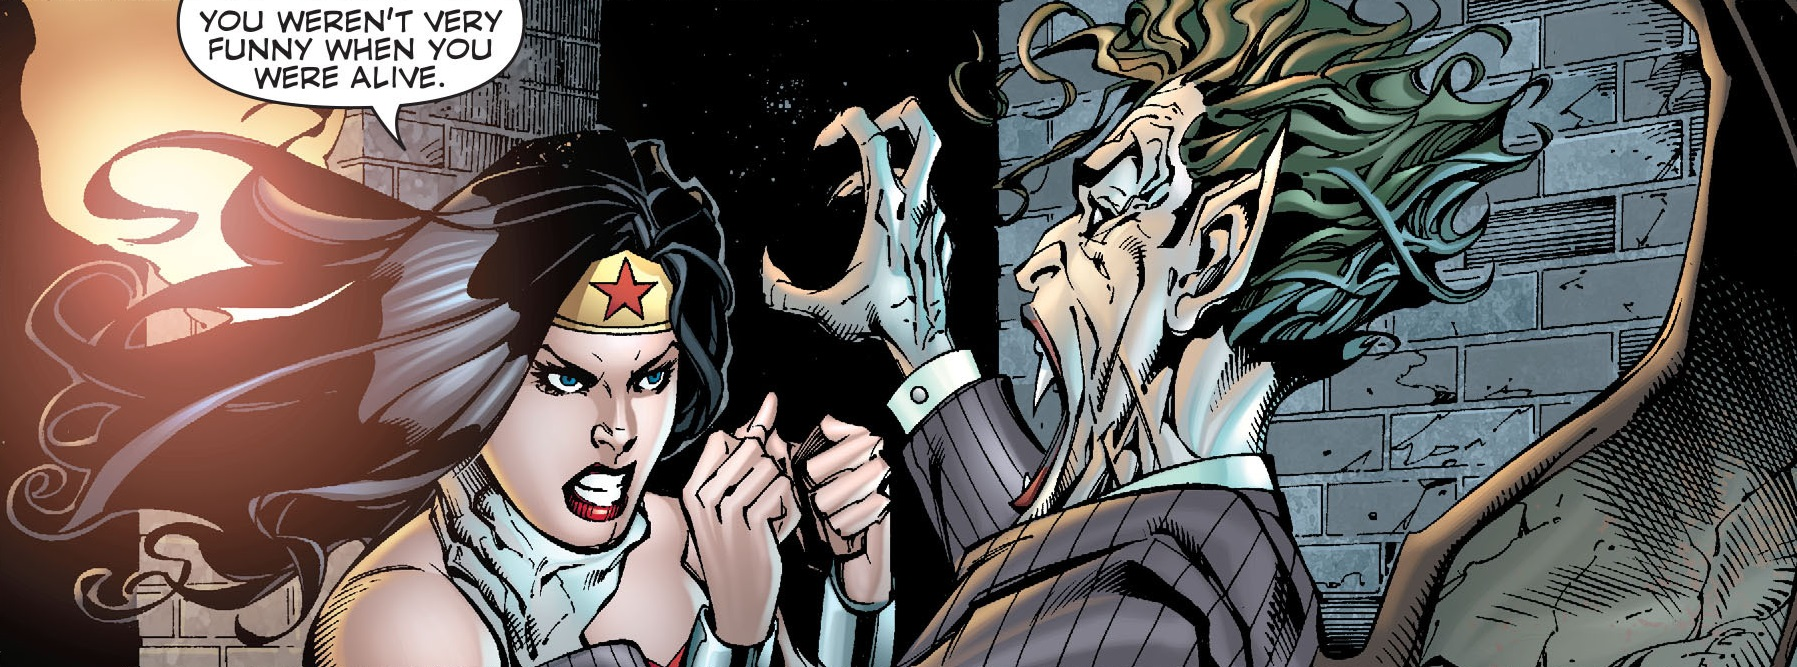 Convergence Wonder Woman 2 thumb 2